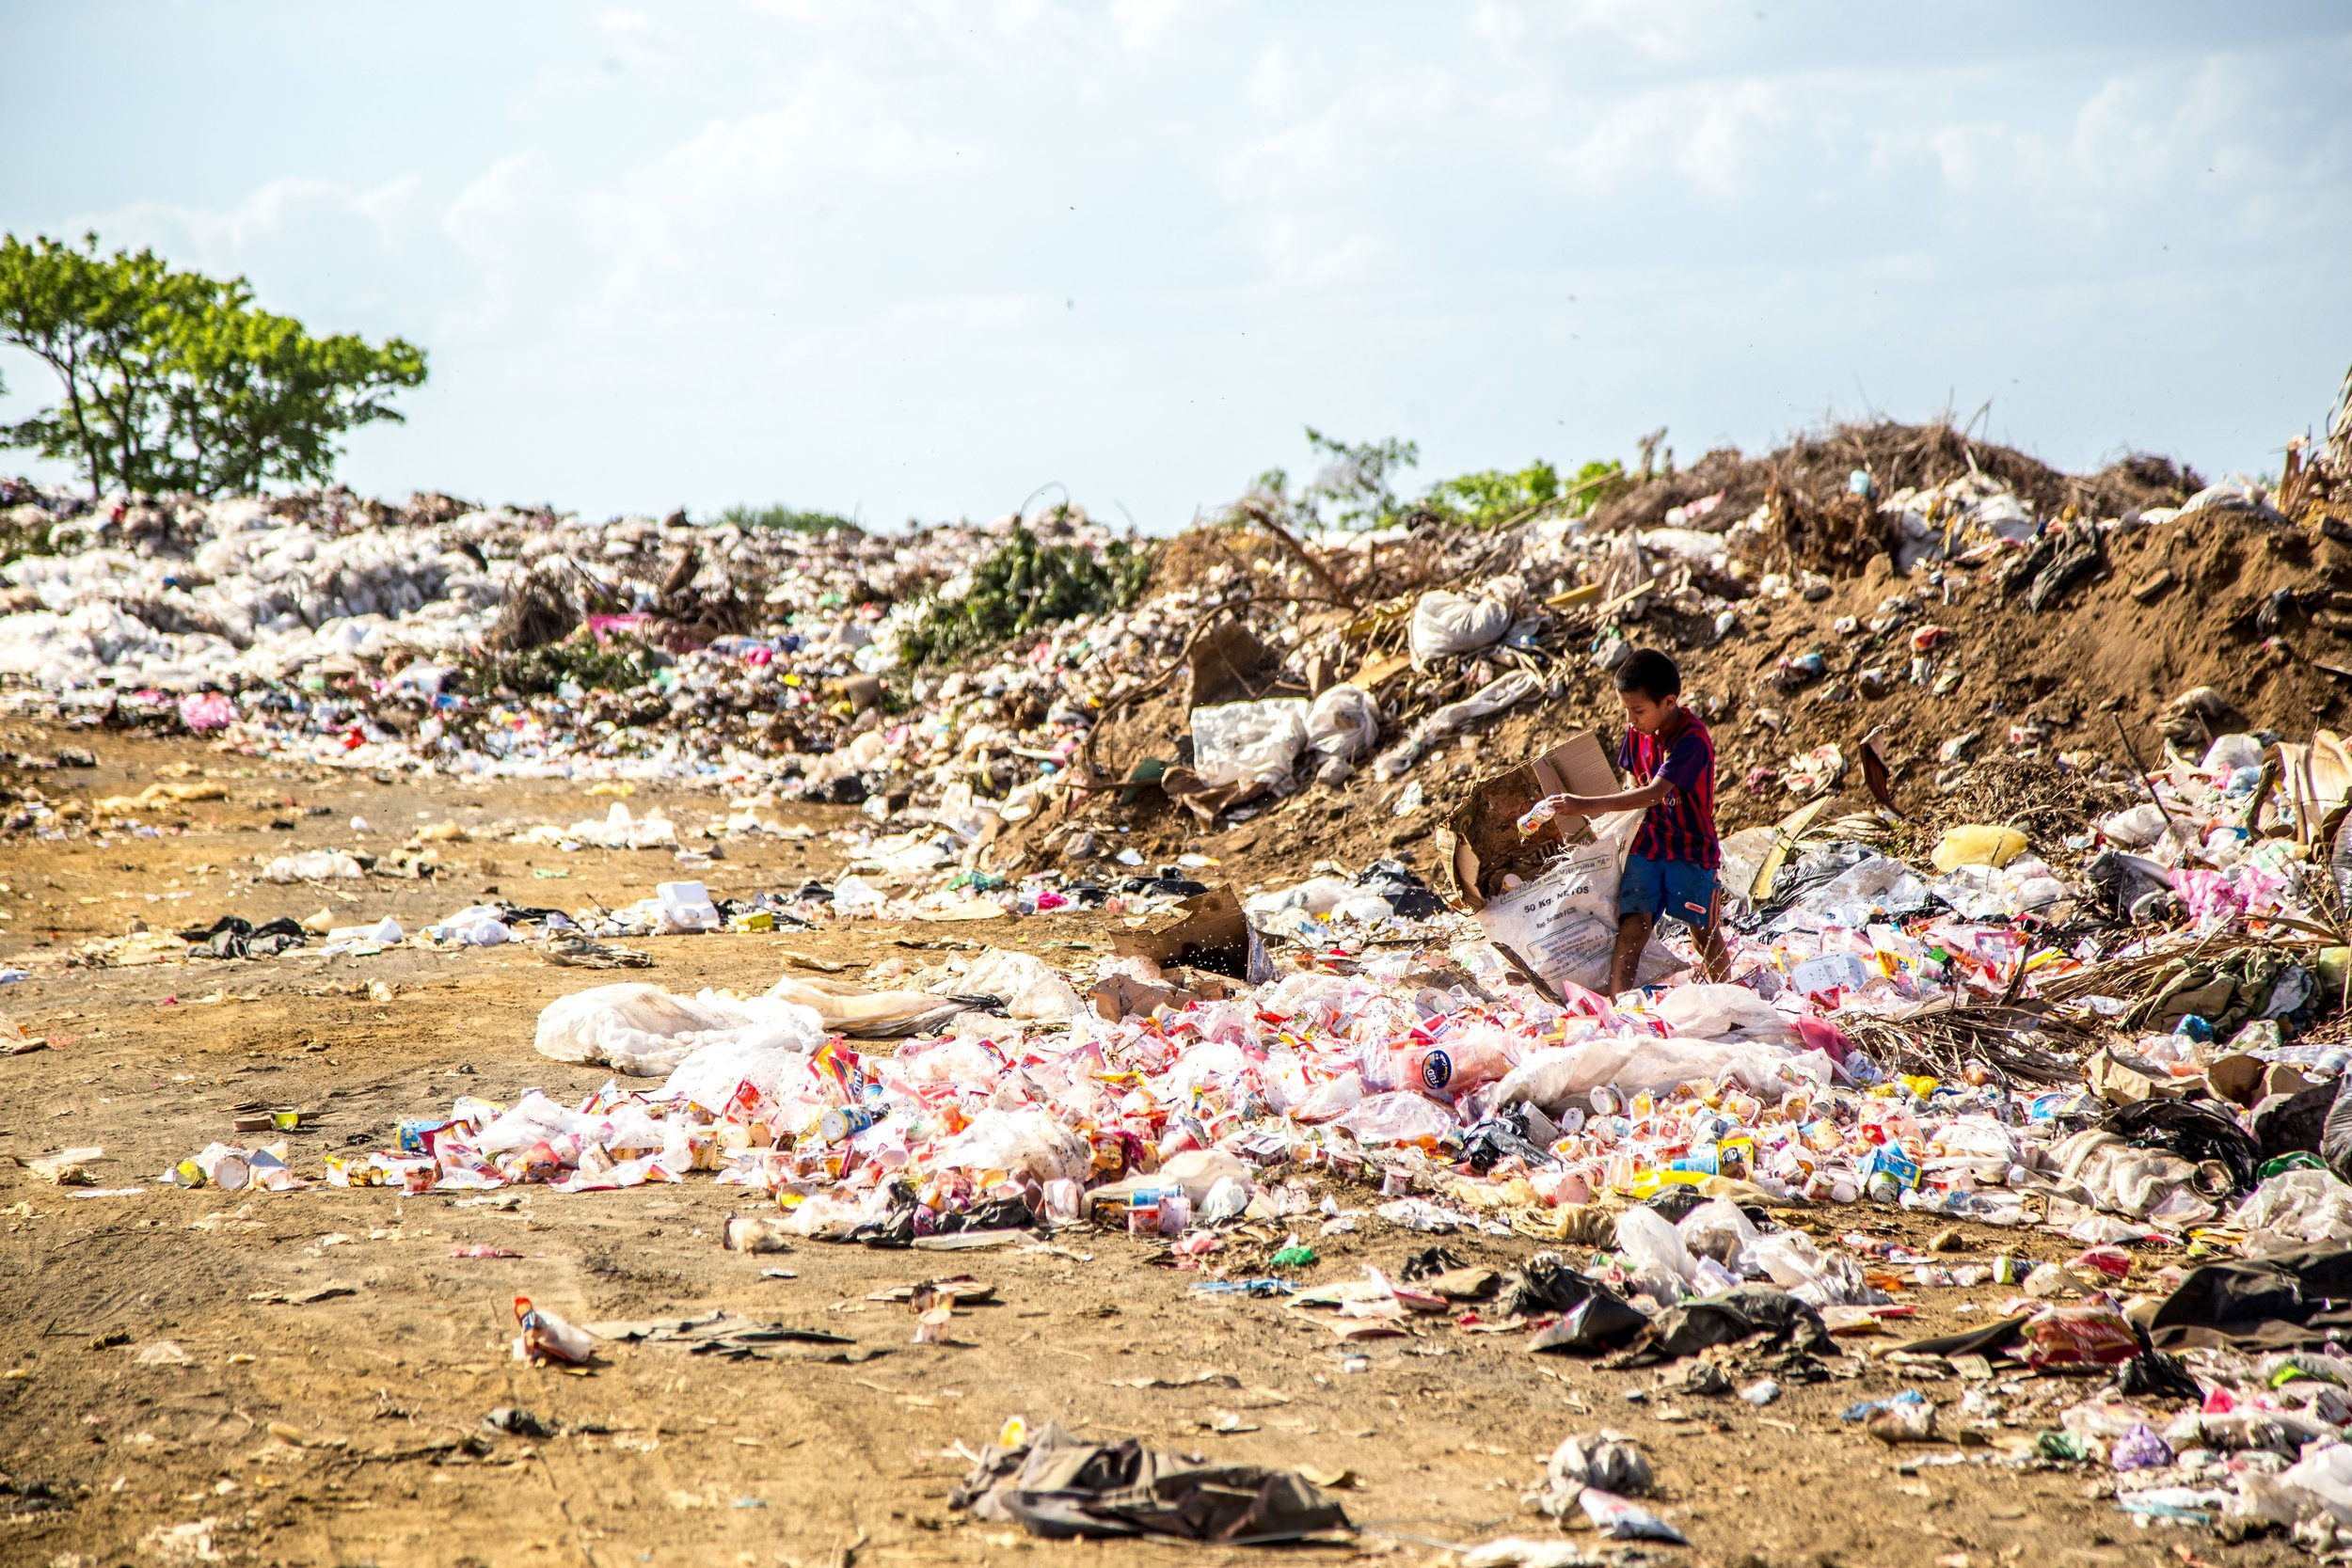 hermes-rivera_landfill_unsplash_model4greenliving_Zero-waste.jpg